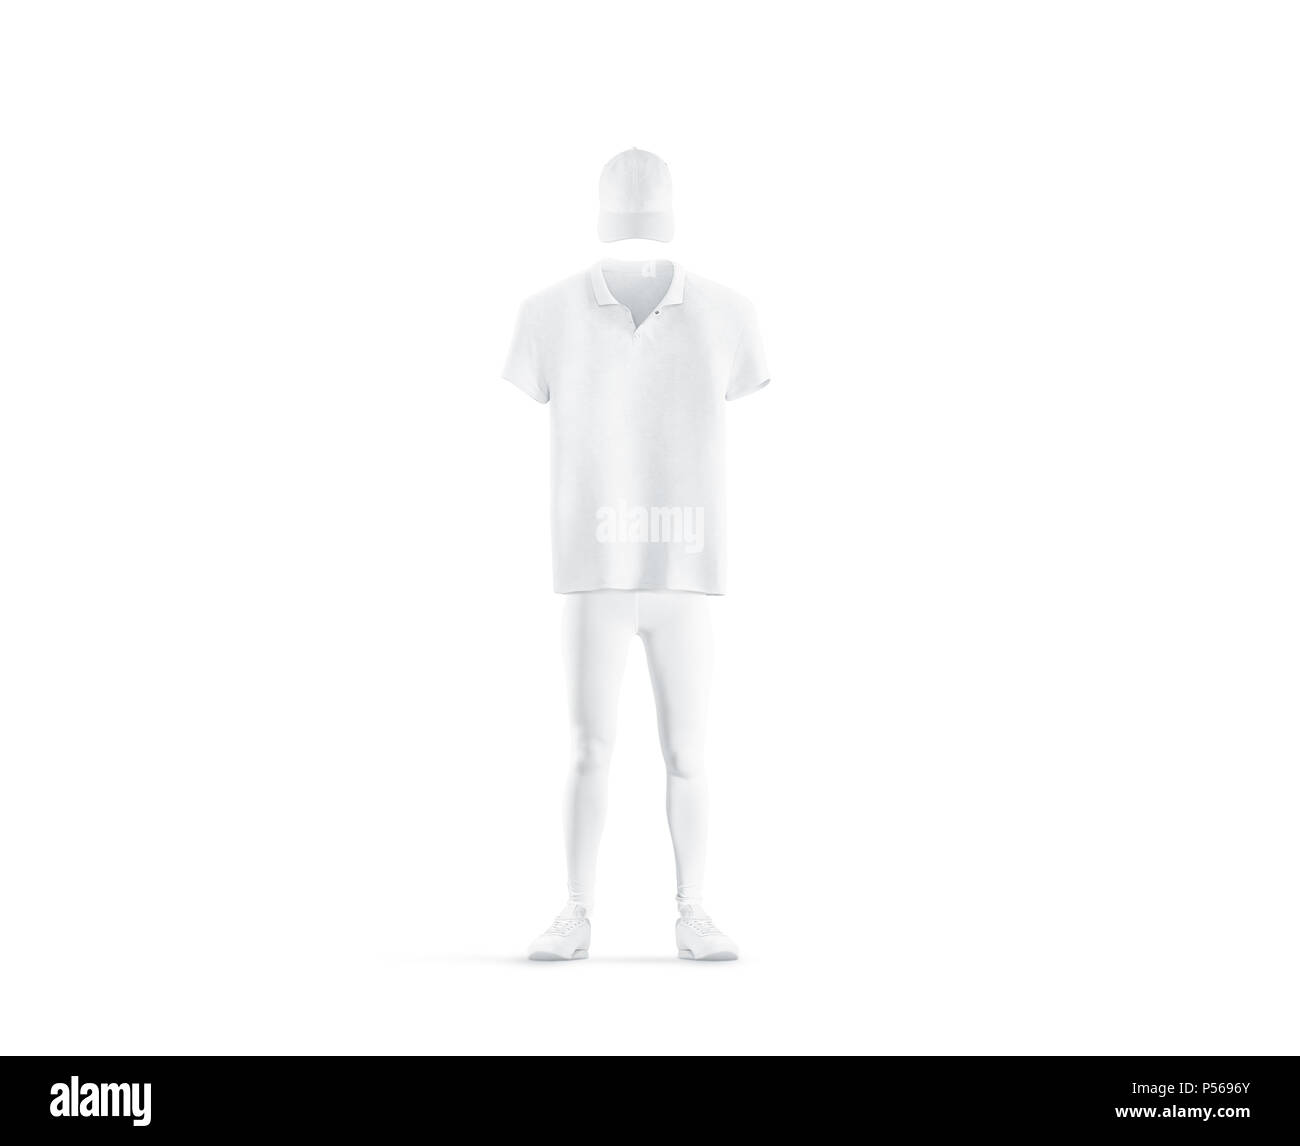 6e39002e8f54 Blank white classic uniform design mock up isolated. Empty cap, polo, pants  and shoes mockup. Clear delivery boy or baseball player outfit dress  template.